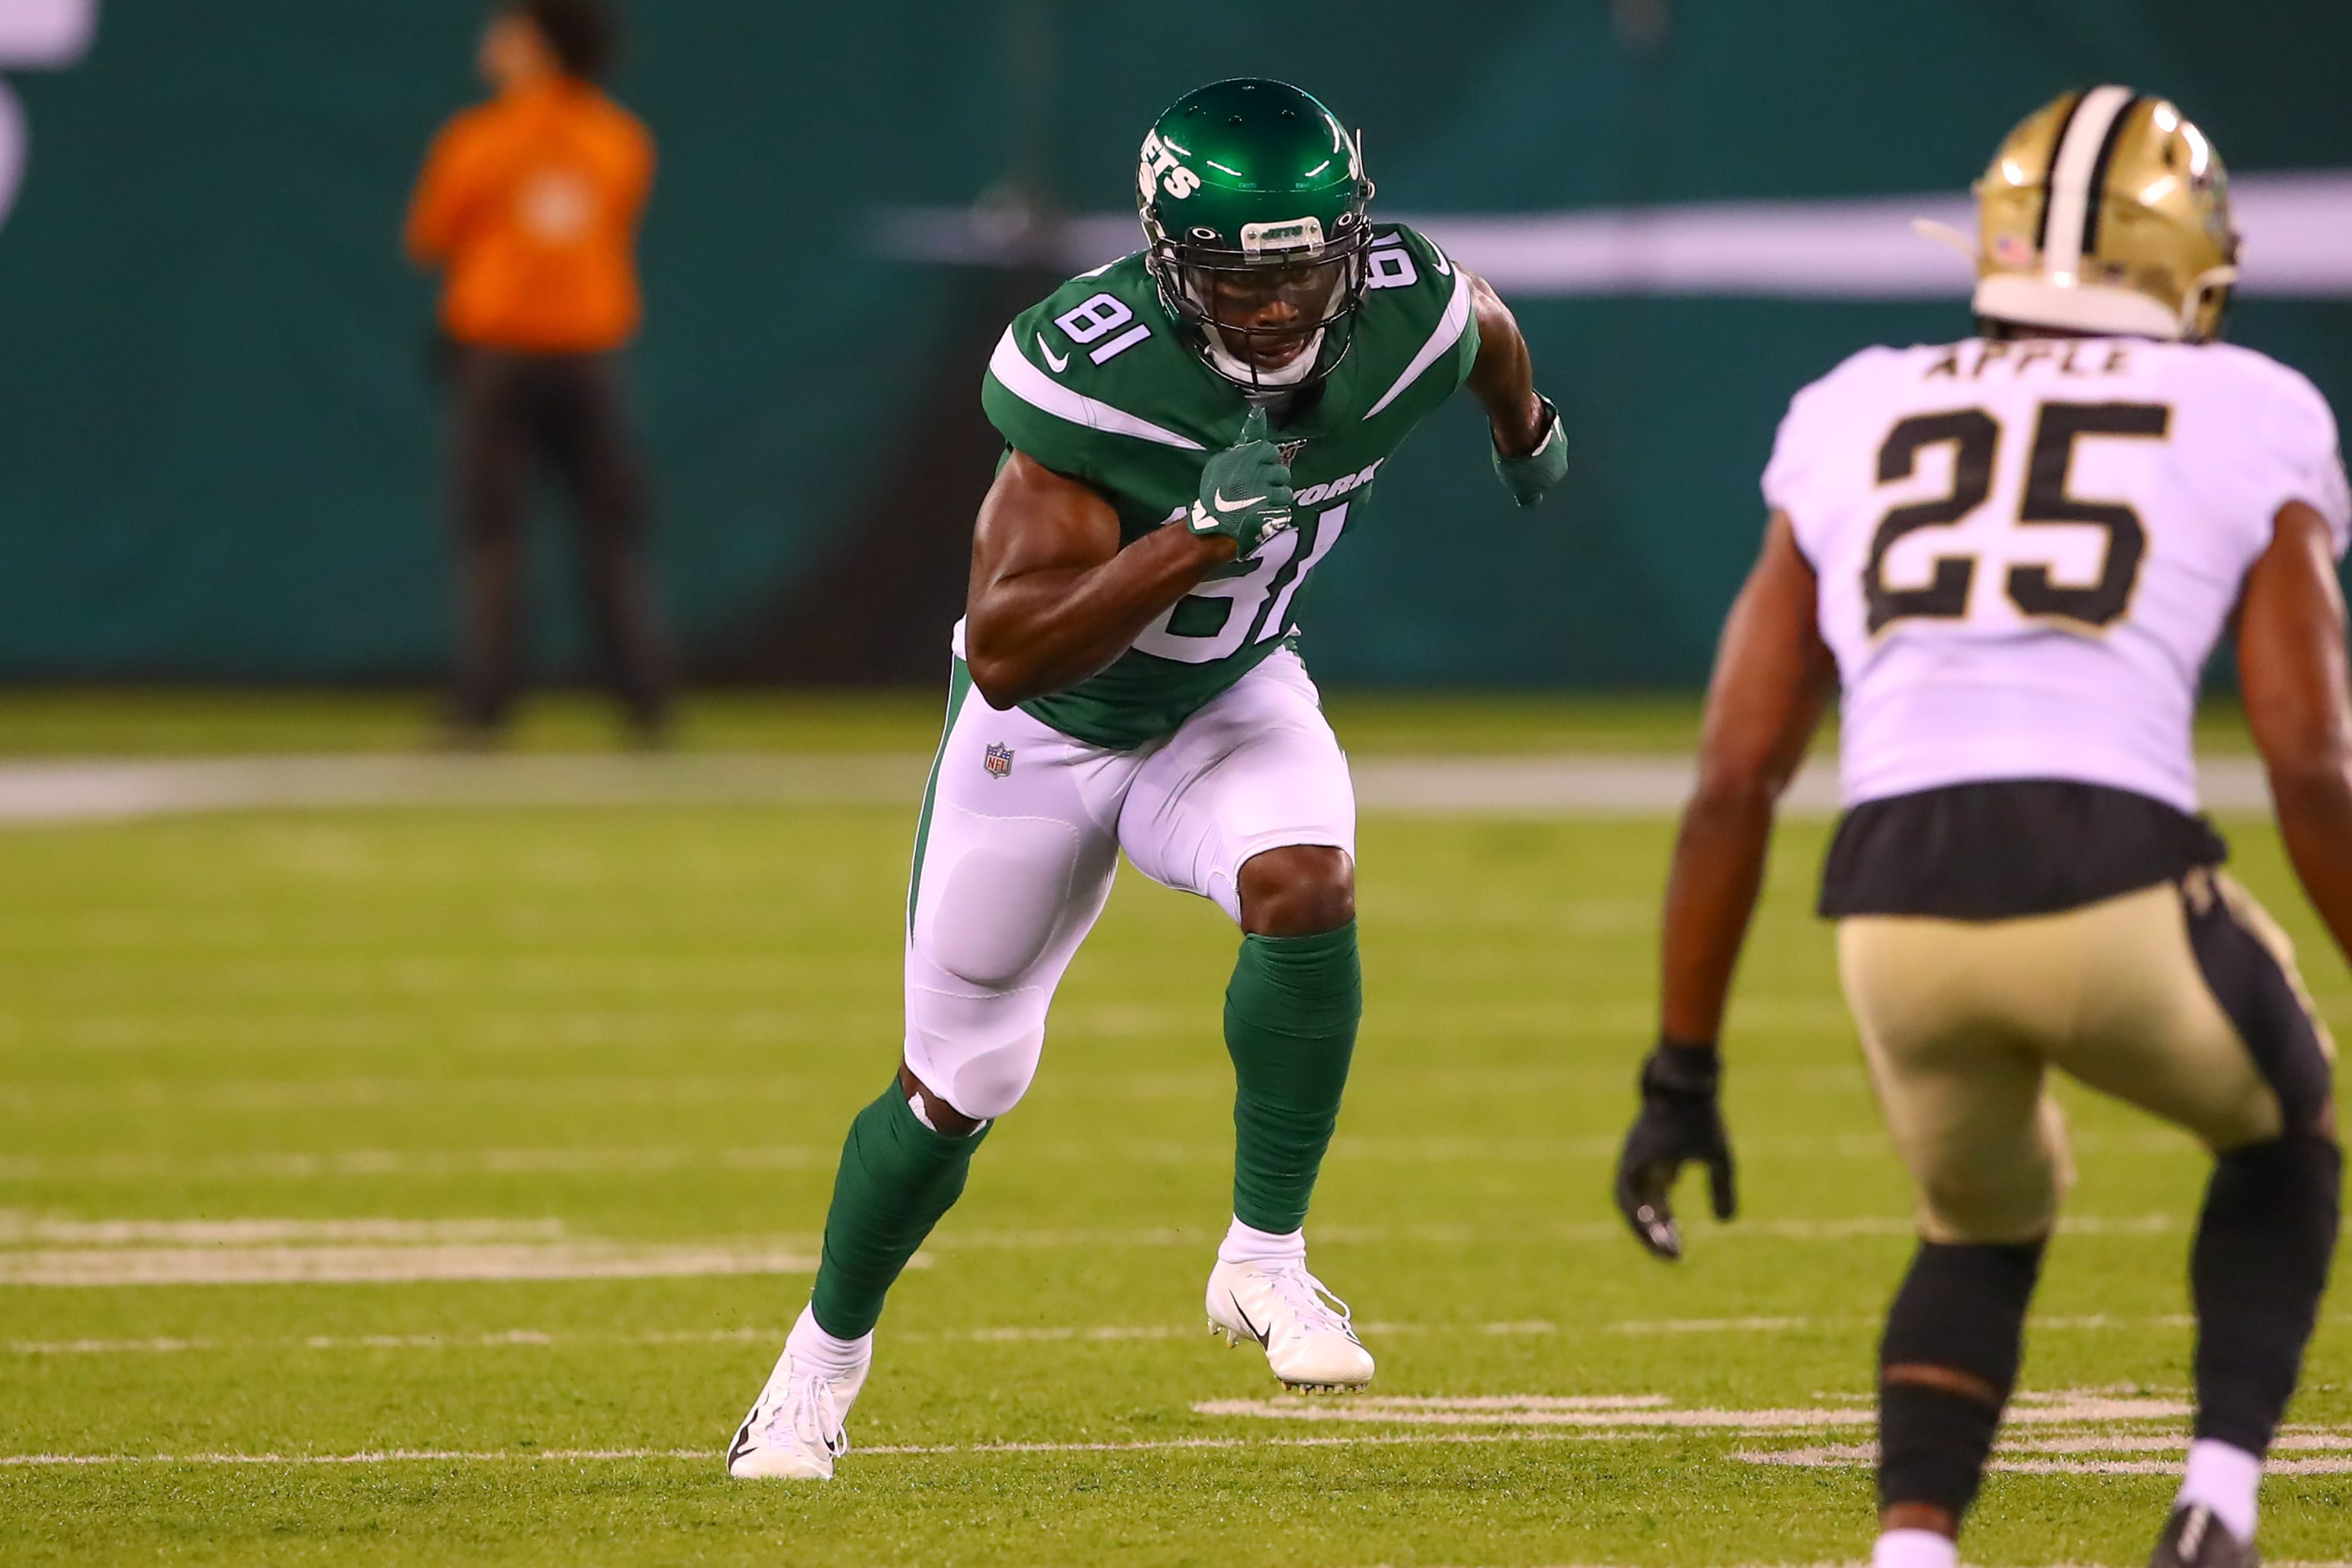 New York Jets, Quincy Enunwa